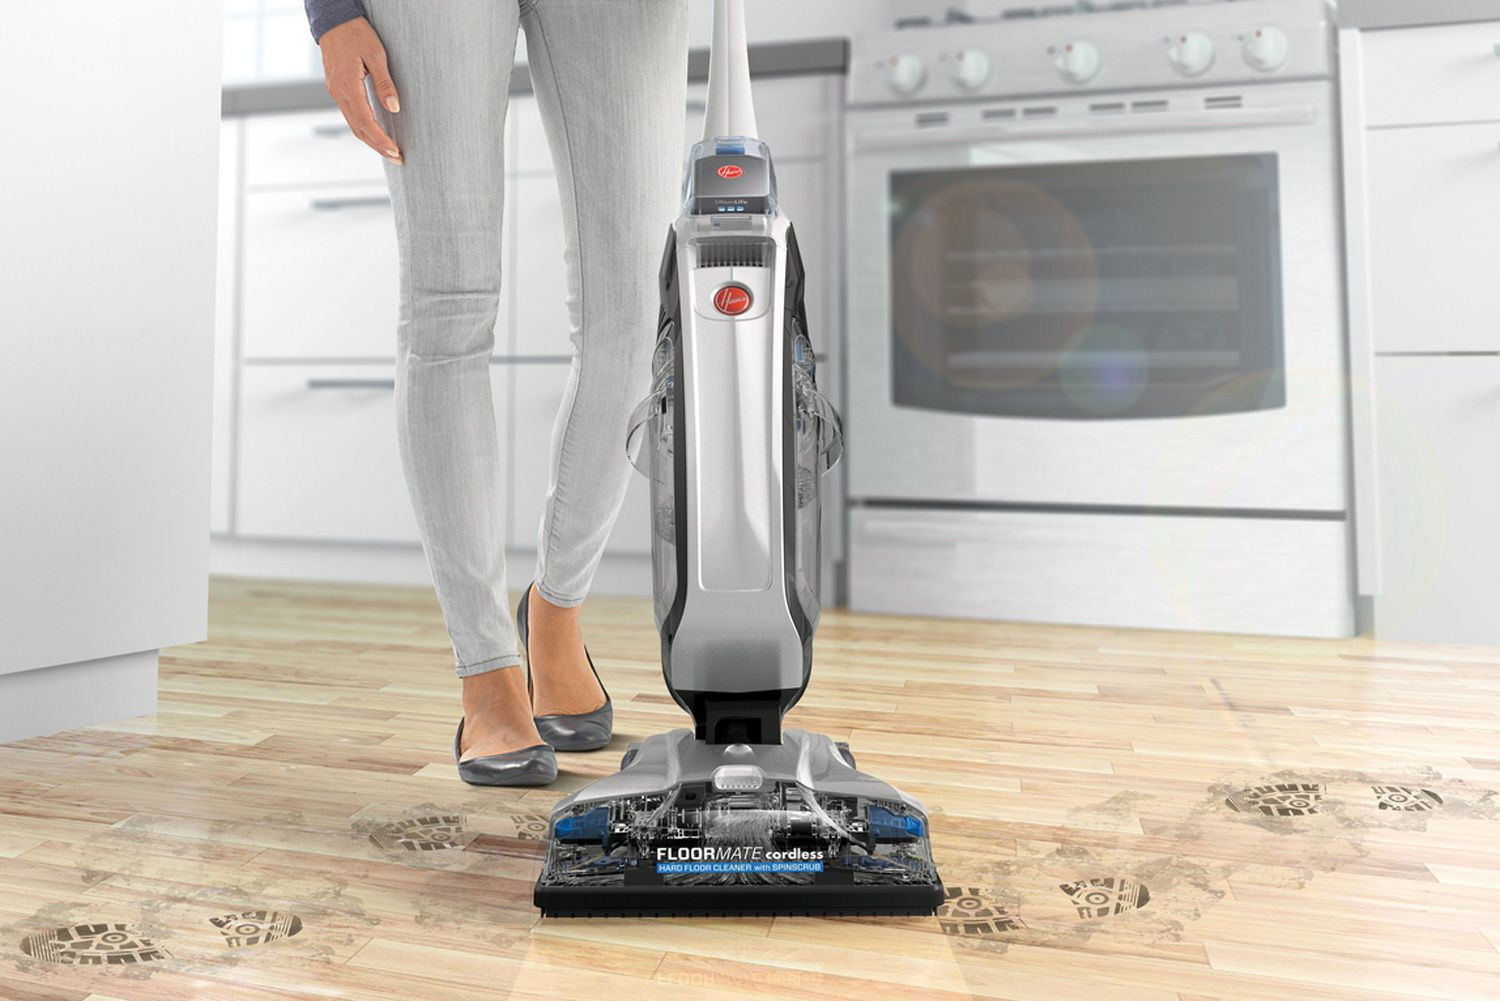 hardwood and tile floor cleaning machines of hoover floormate cleaner review regarding hoover floormate 59a452af685fbe00102f4ce0